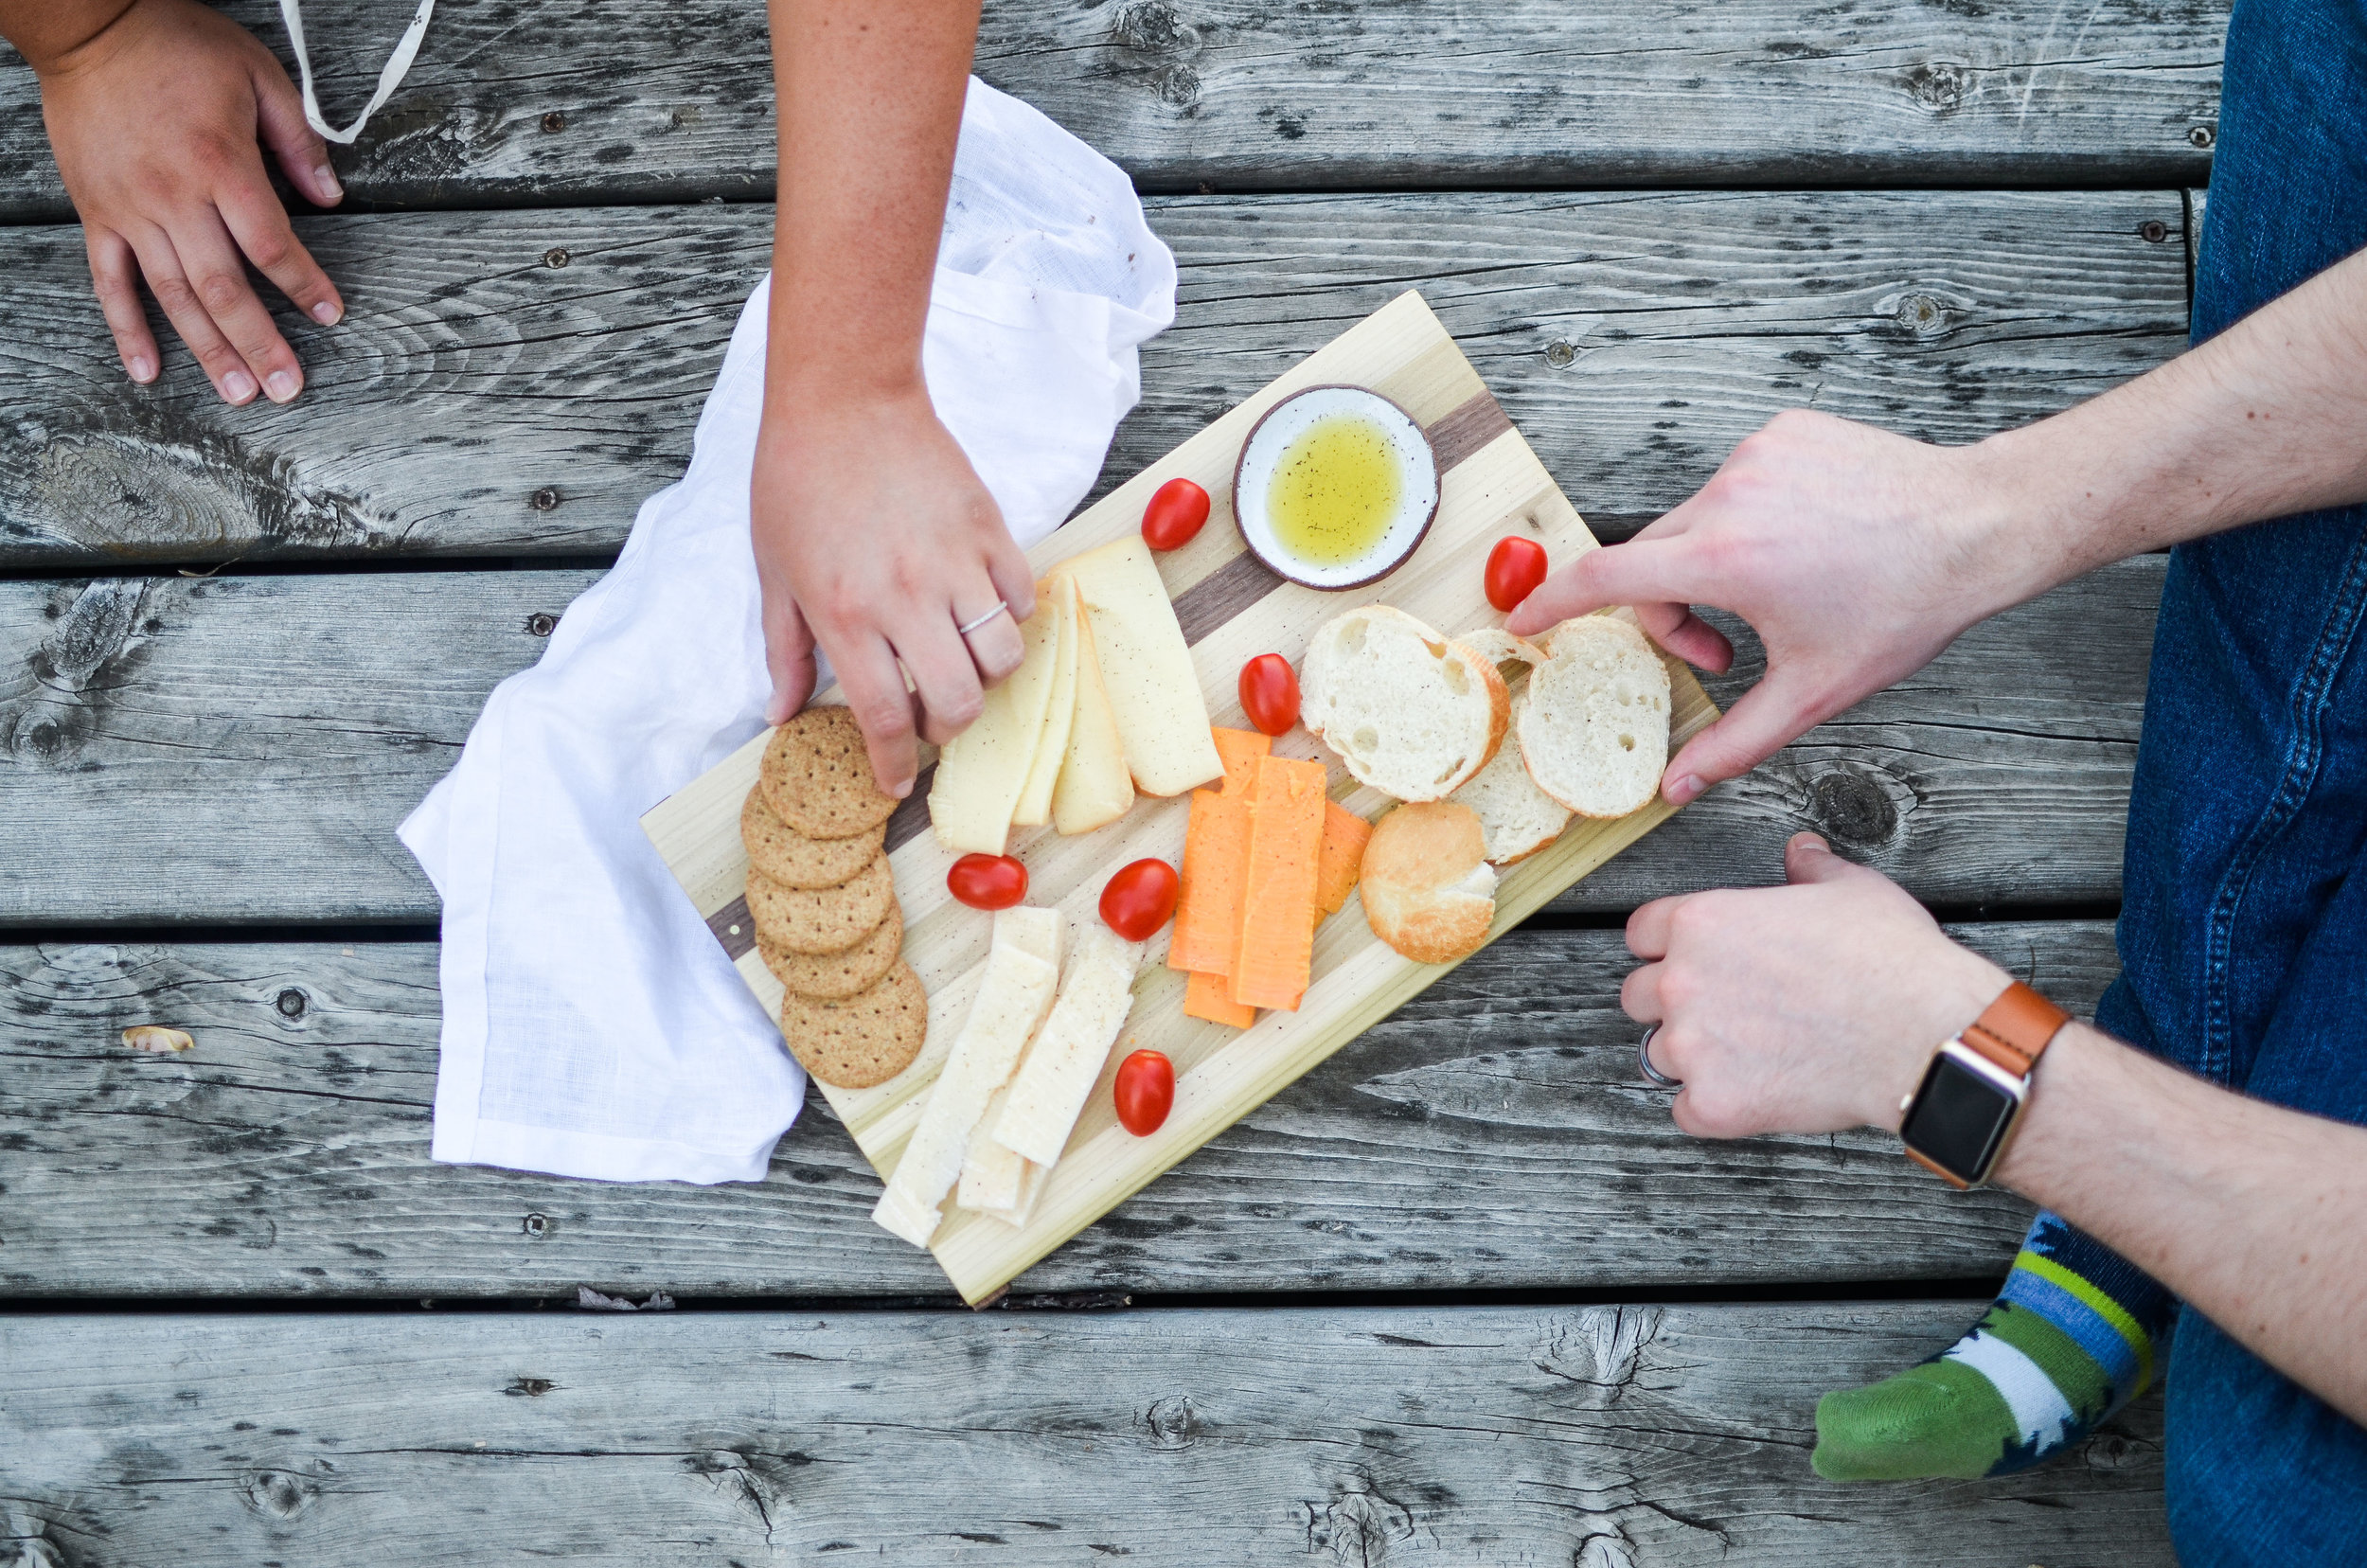 Wendling_Boyd_Gather_Table_Co_Charcuterie_Plate-2.jpg